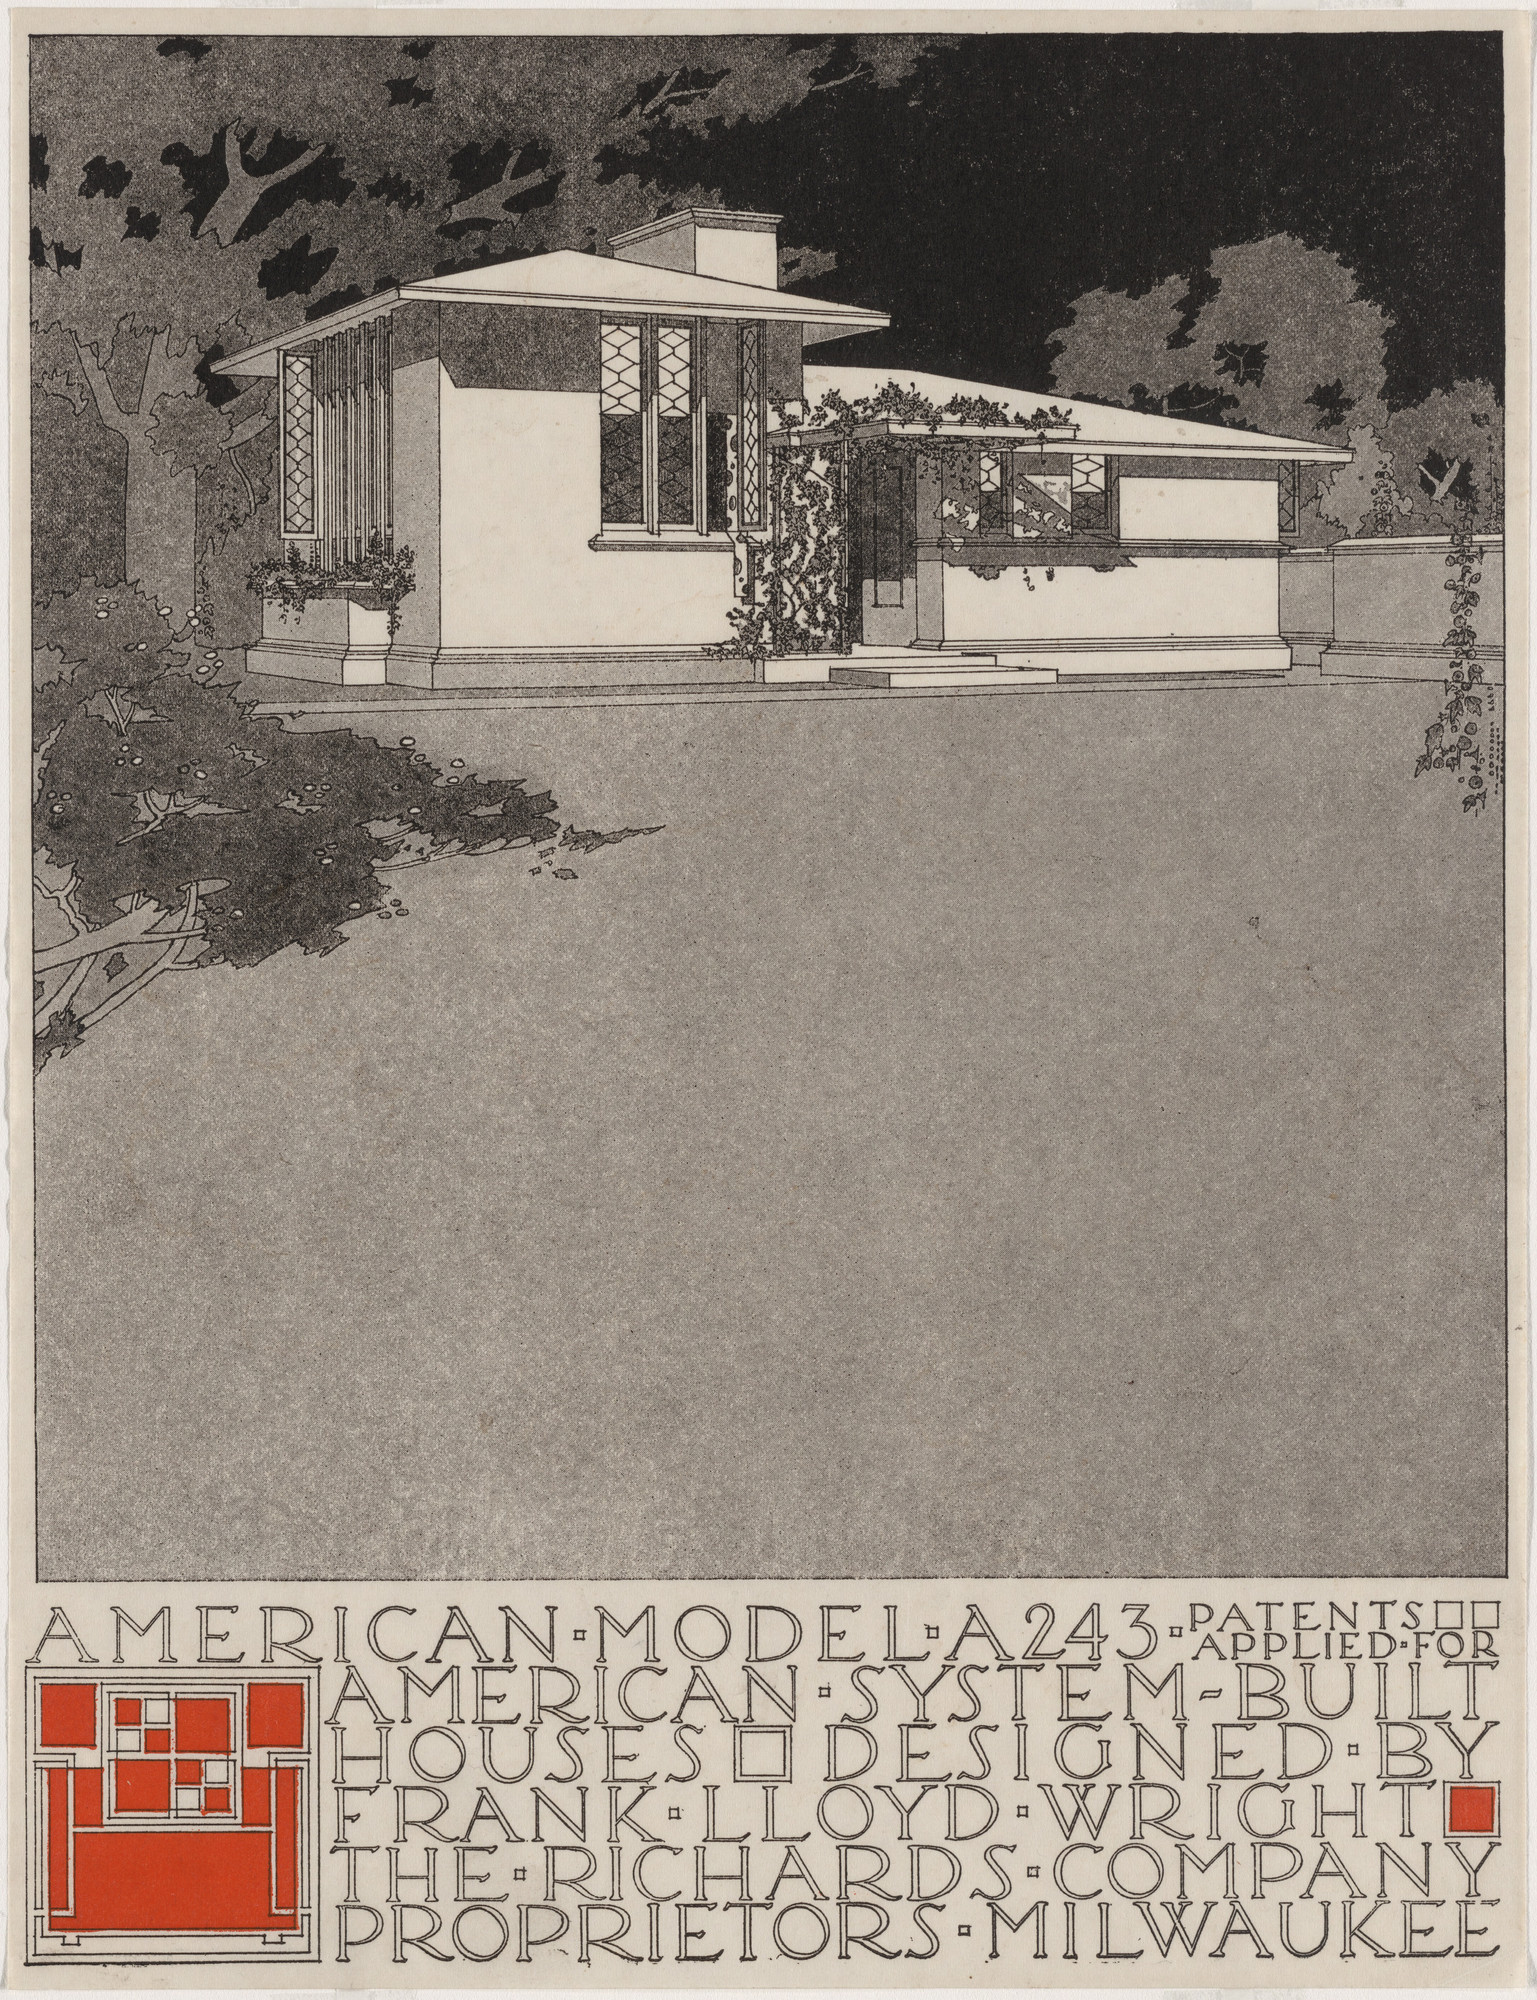 Frank Lloyd Wright. American System-Built Houses for The Richards Company, project, Milwaukee, Wisconsin, Perspective of model A243. c. 1915-17